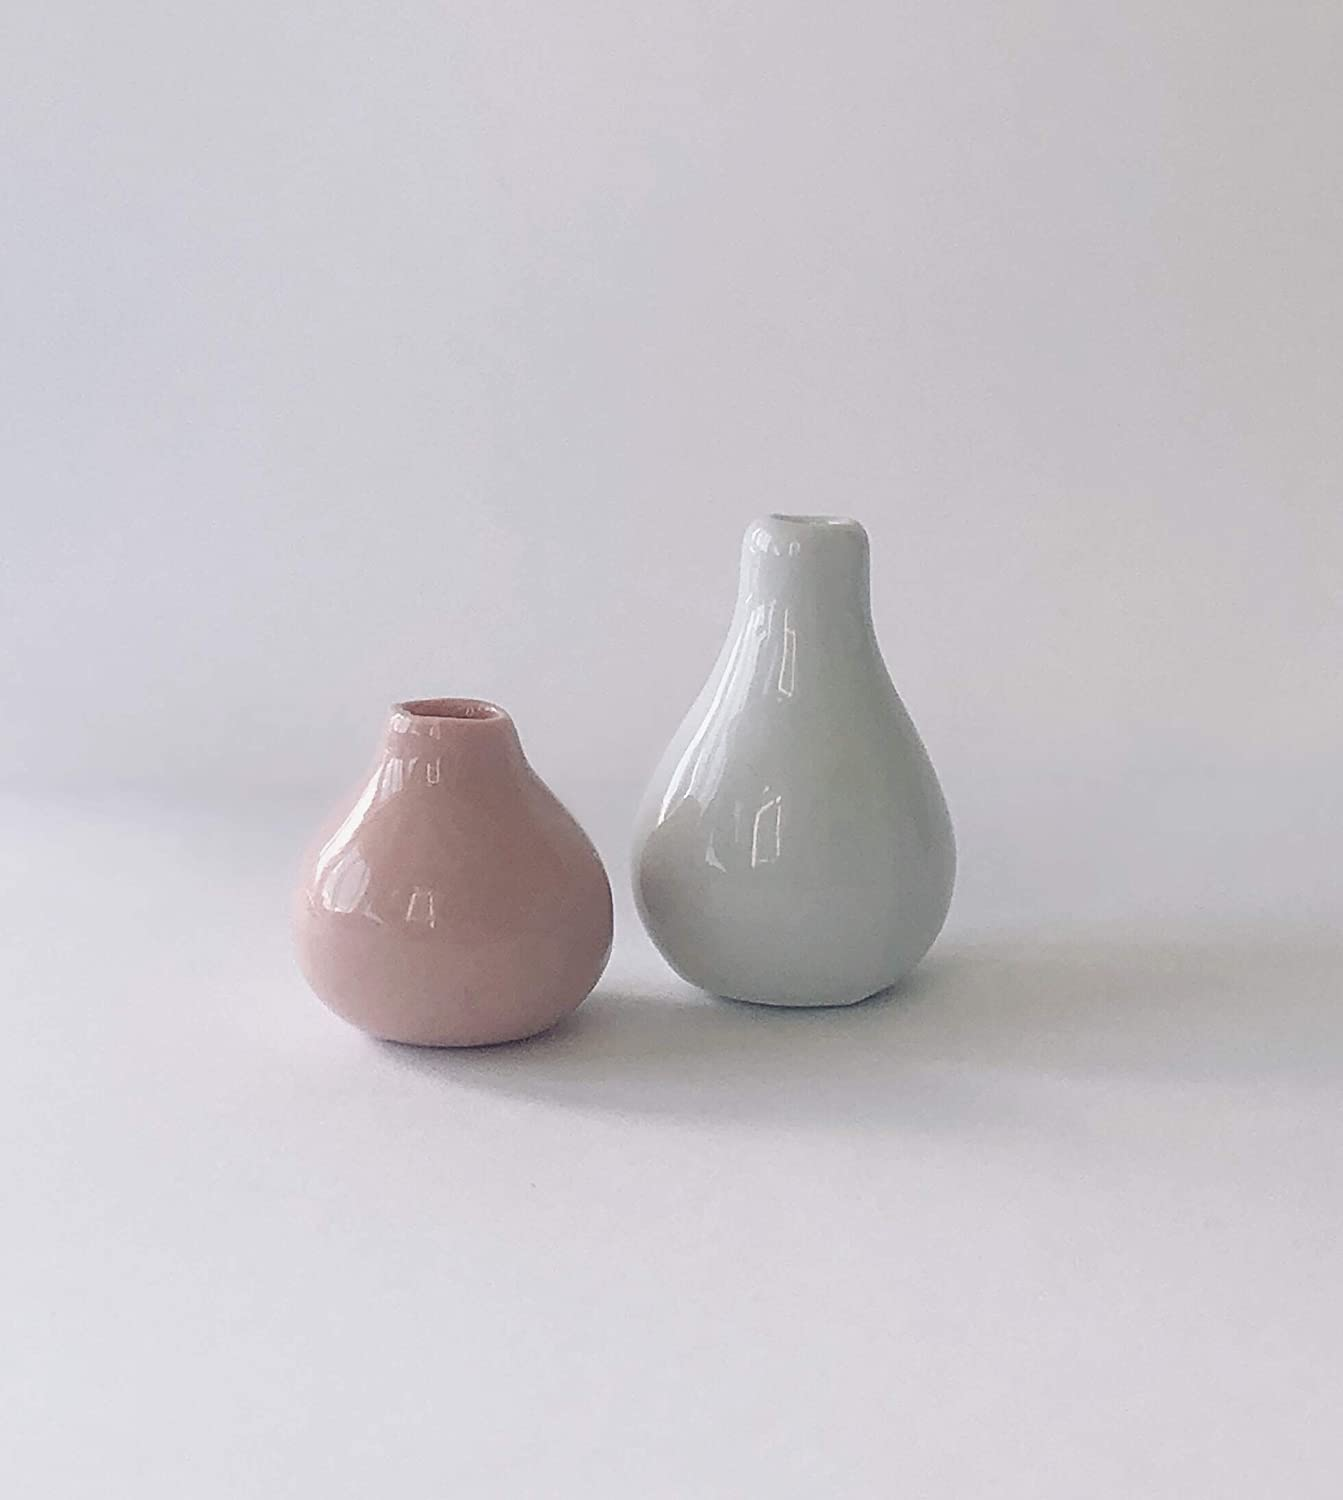 Macy Mae Dollhouse Miniature Vase Set 1:12 Scale White and Pink